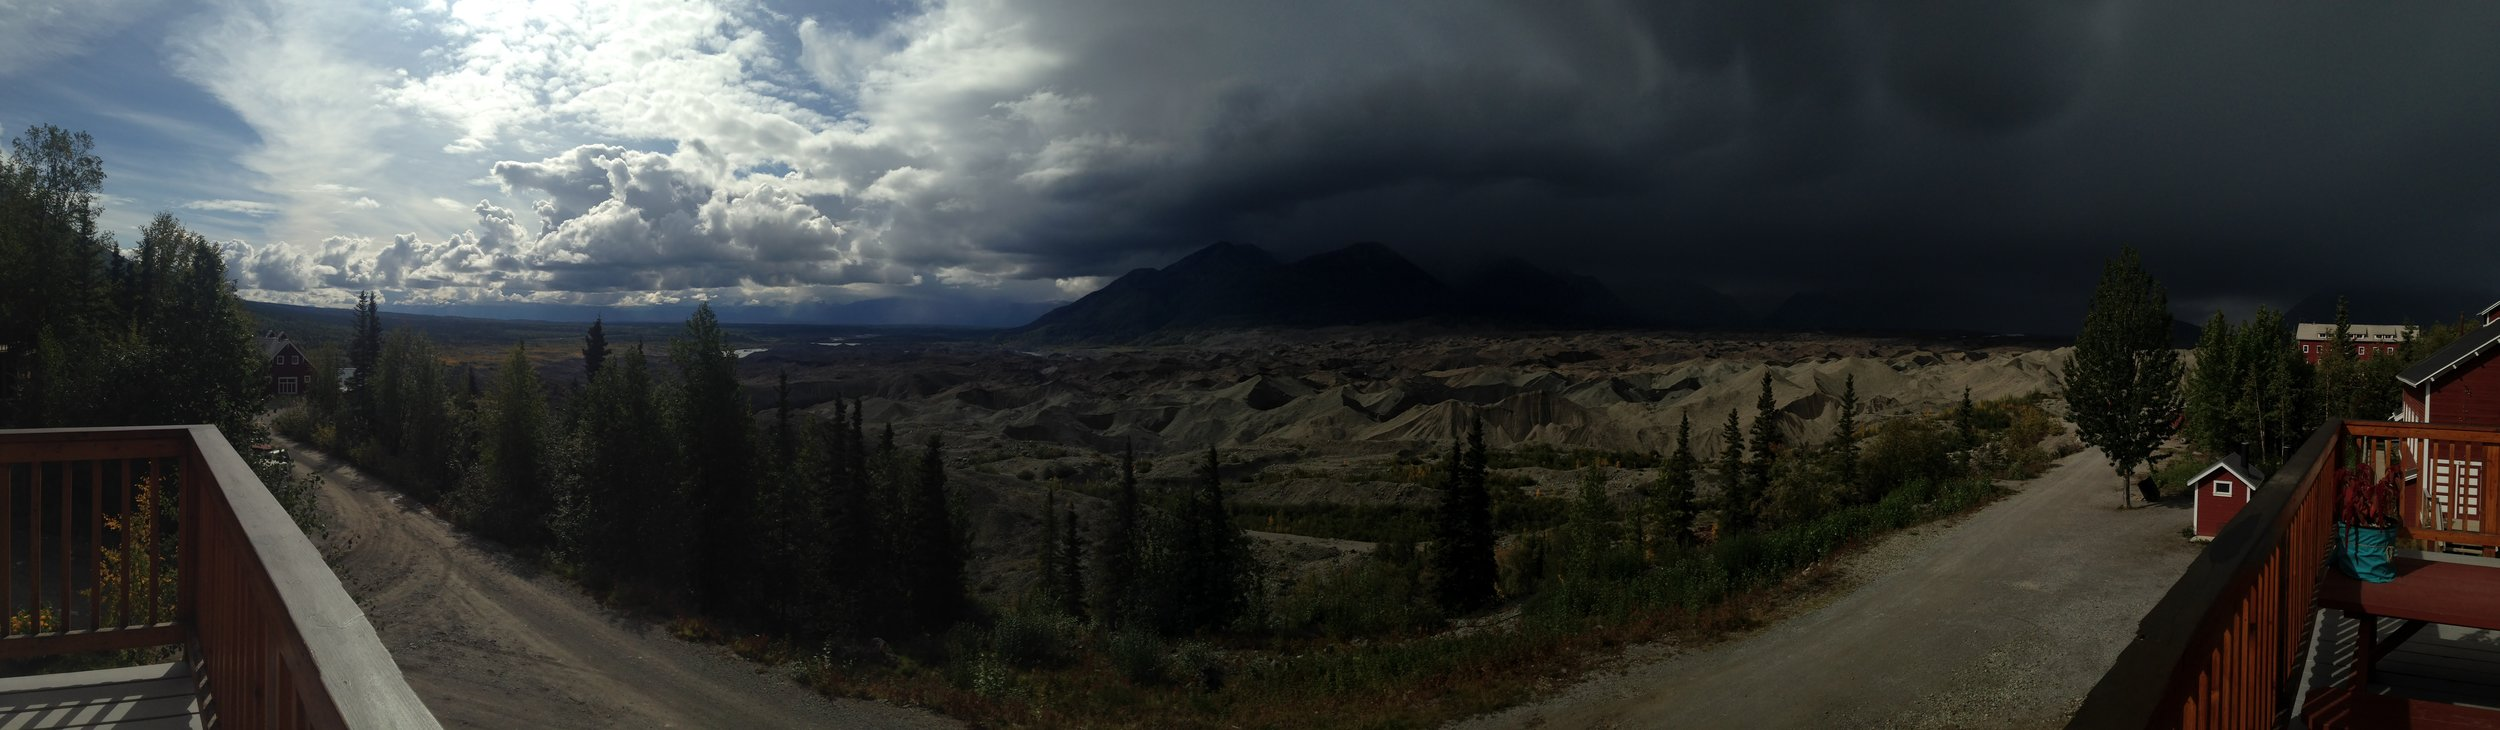 Weather St Elias National Park Storm over Kennicott Glacier